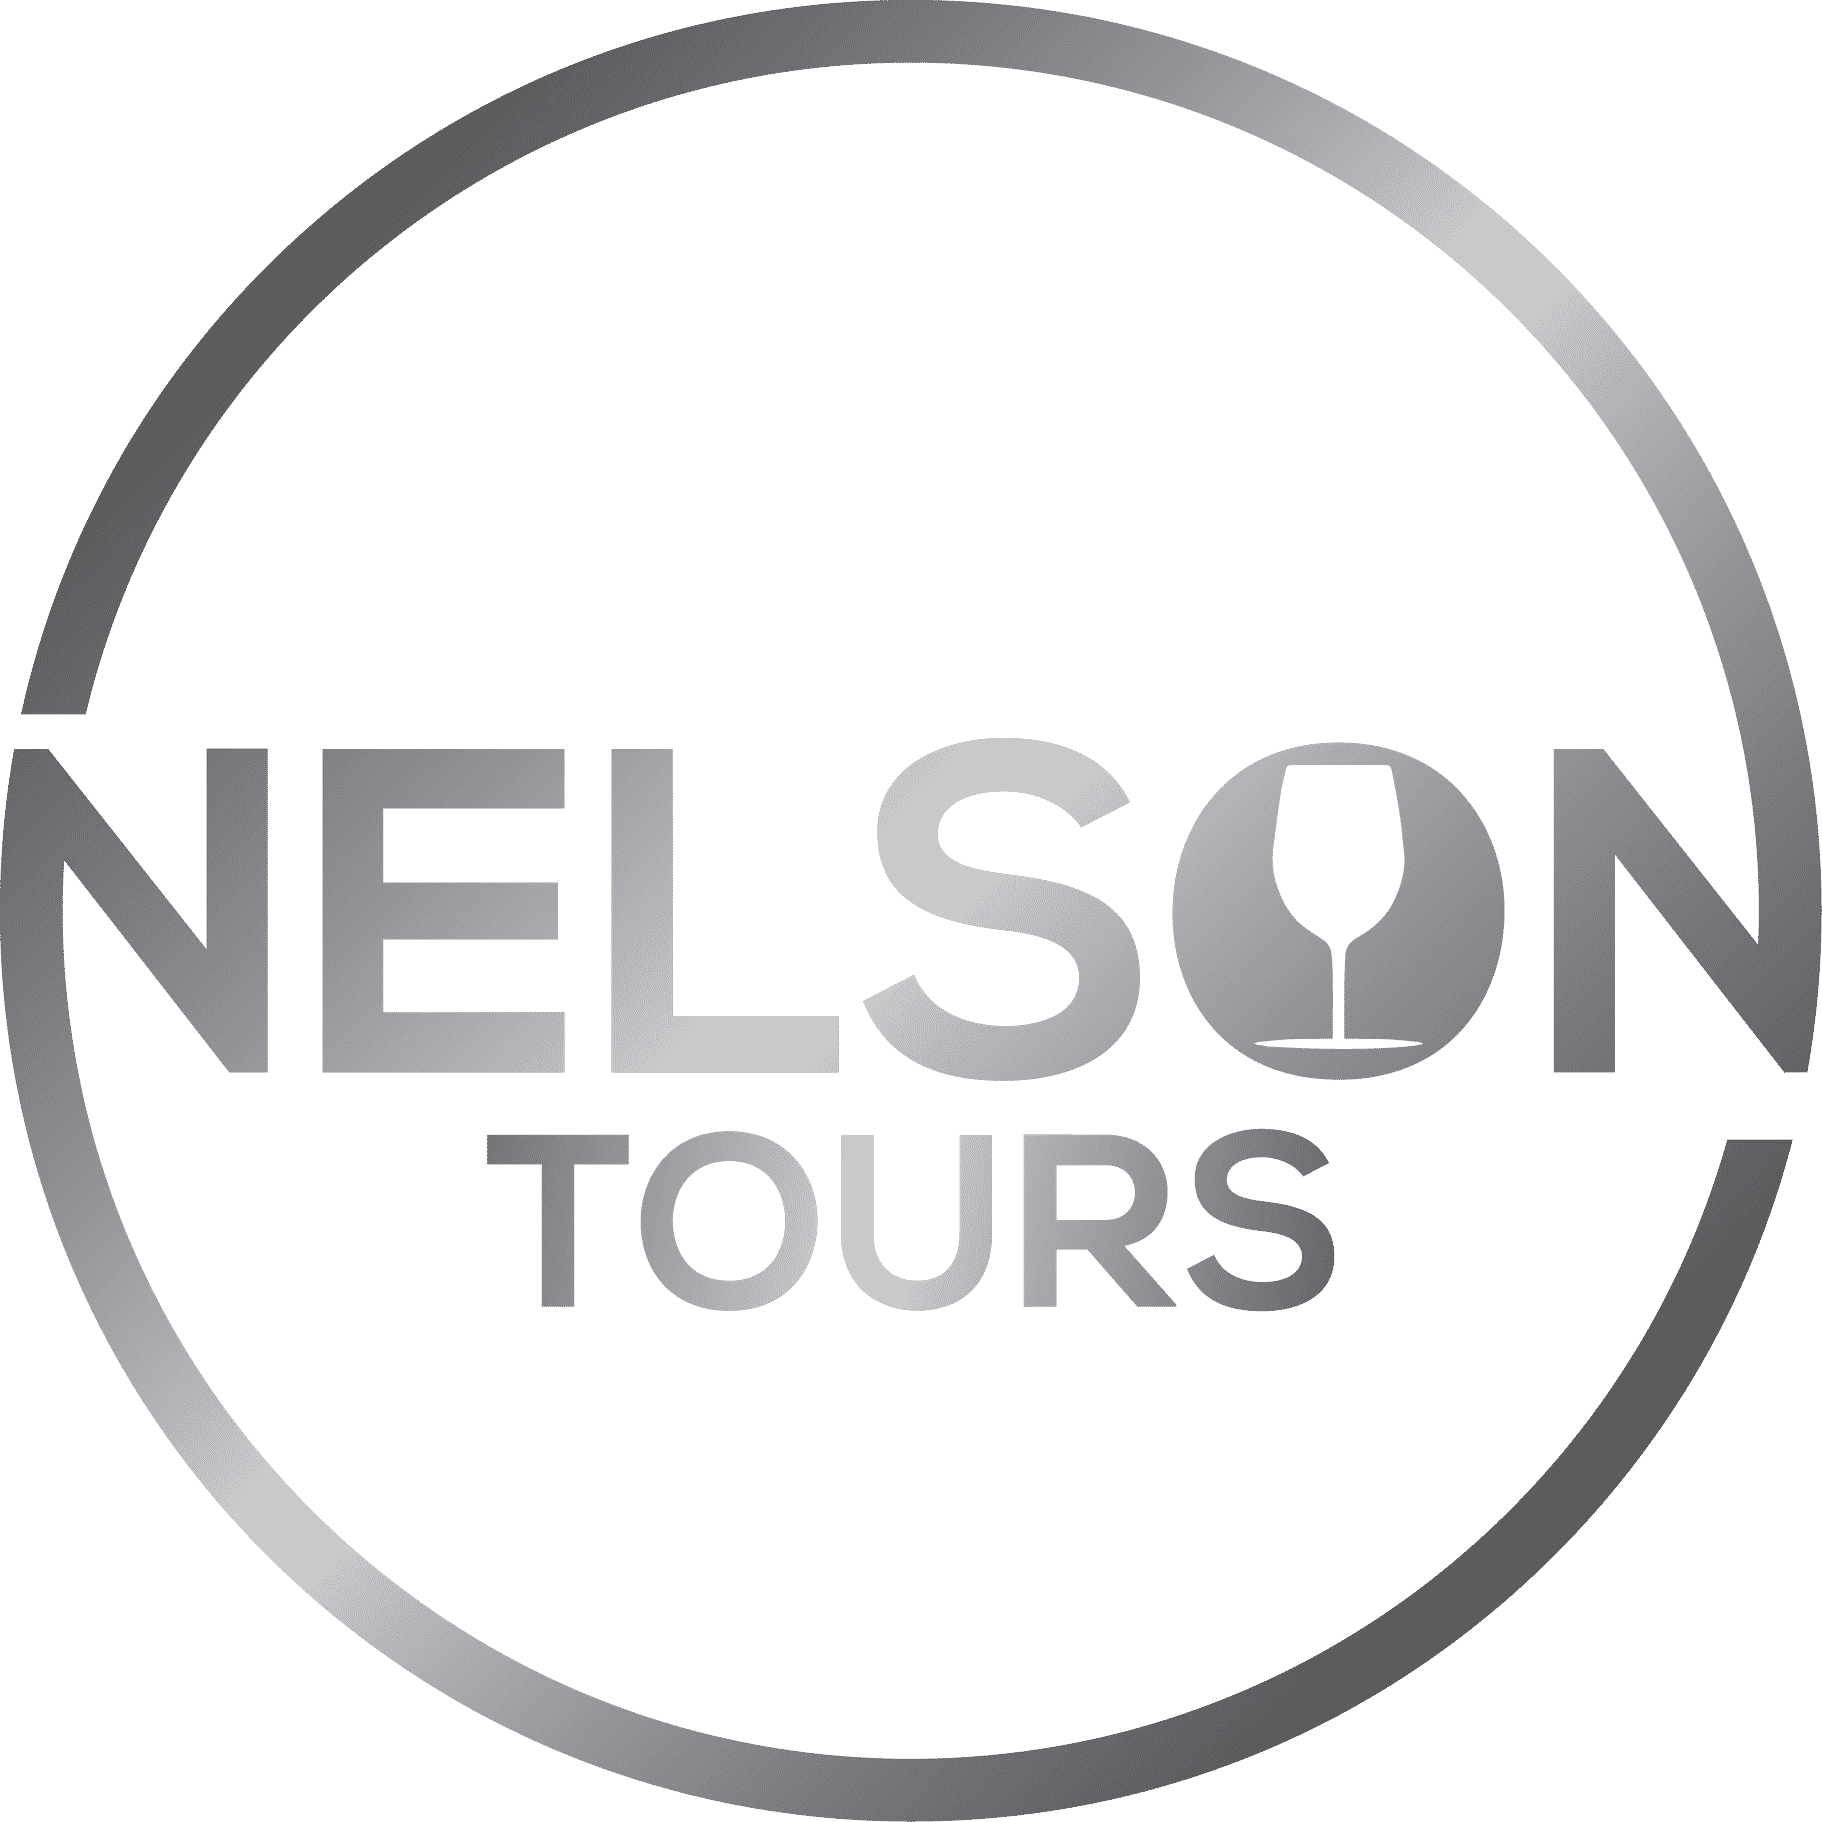 Nelson Tours and Travel